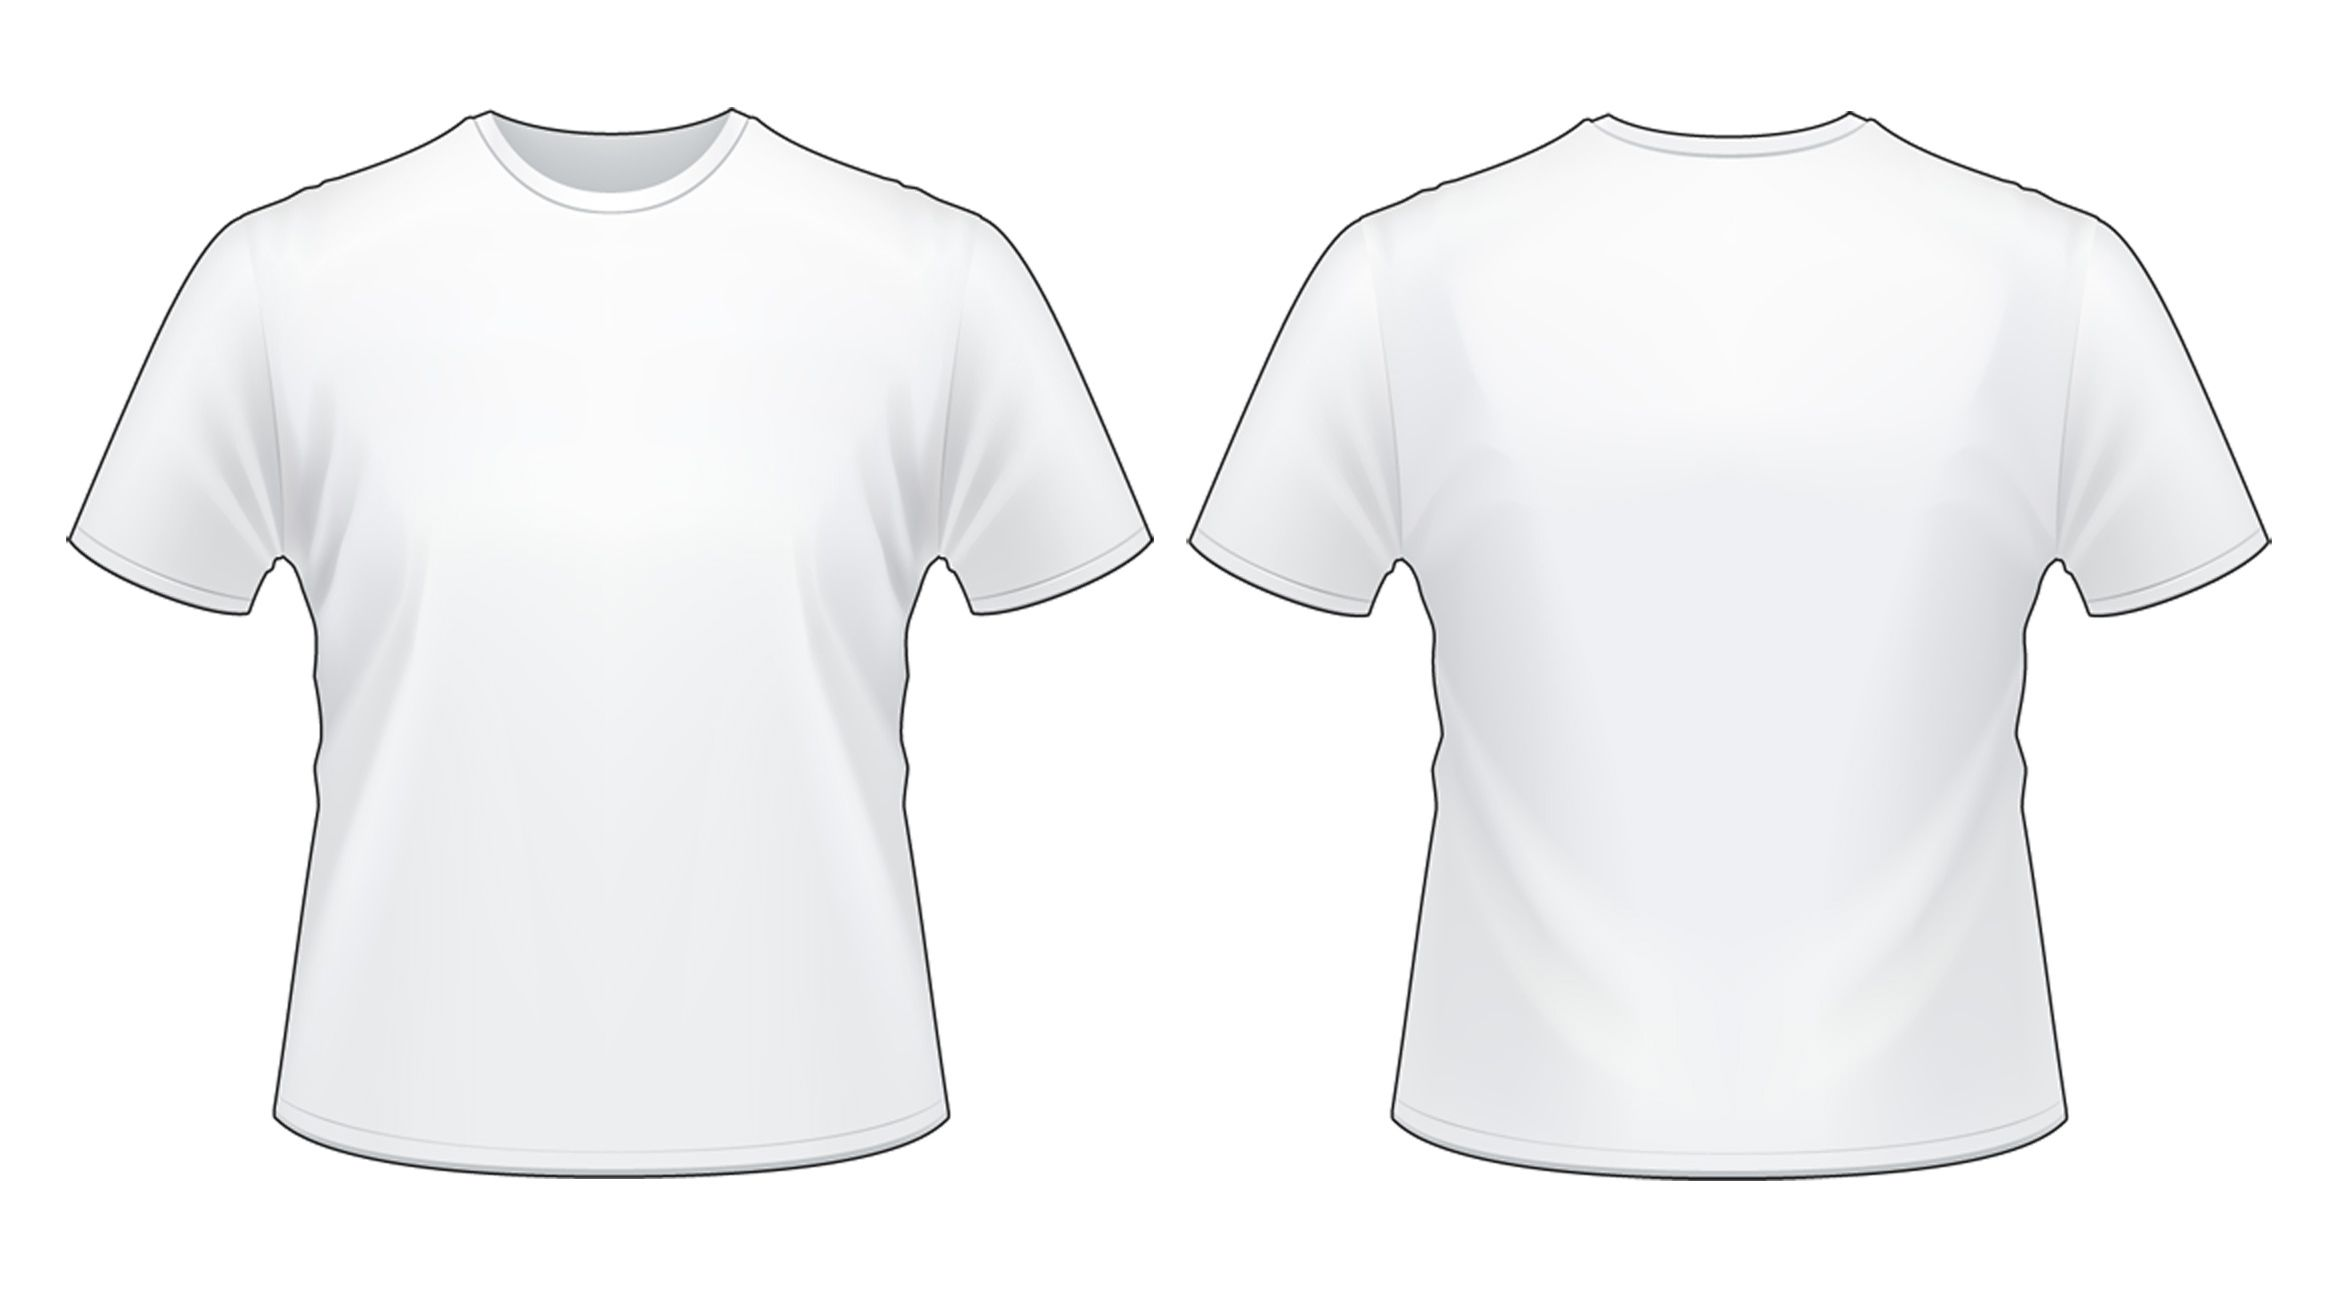 Download Why Make Your Own T Shirt Design Careyfashion Com In 2020 Shirt Template Tshirt Template Blank T Shirts